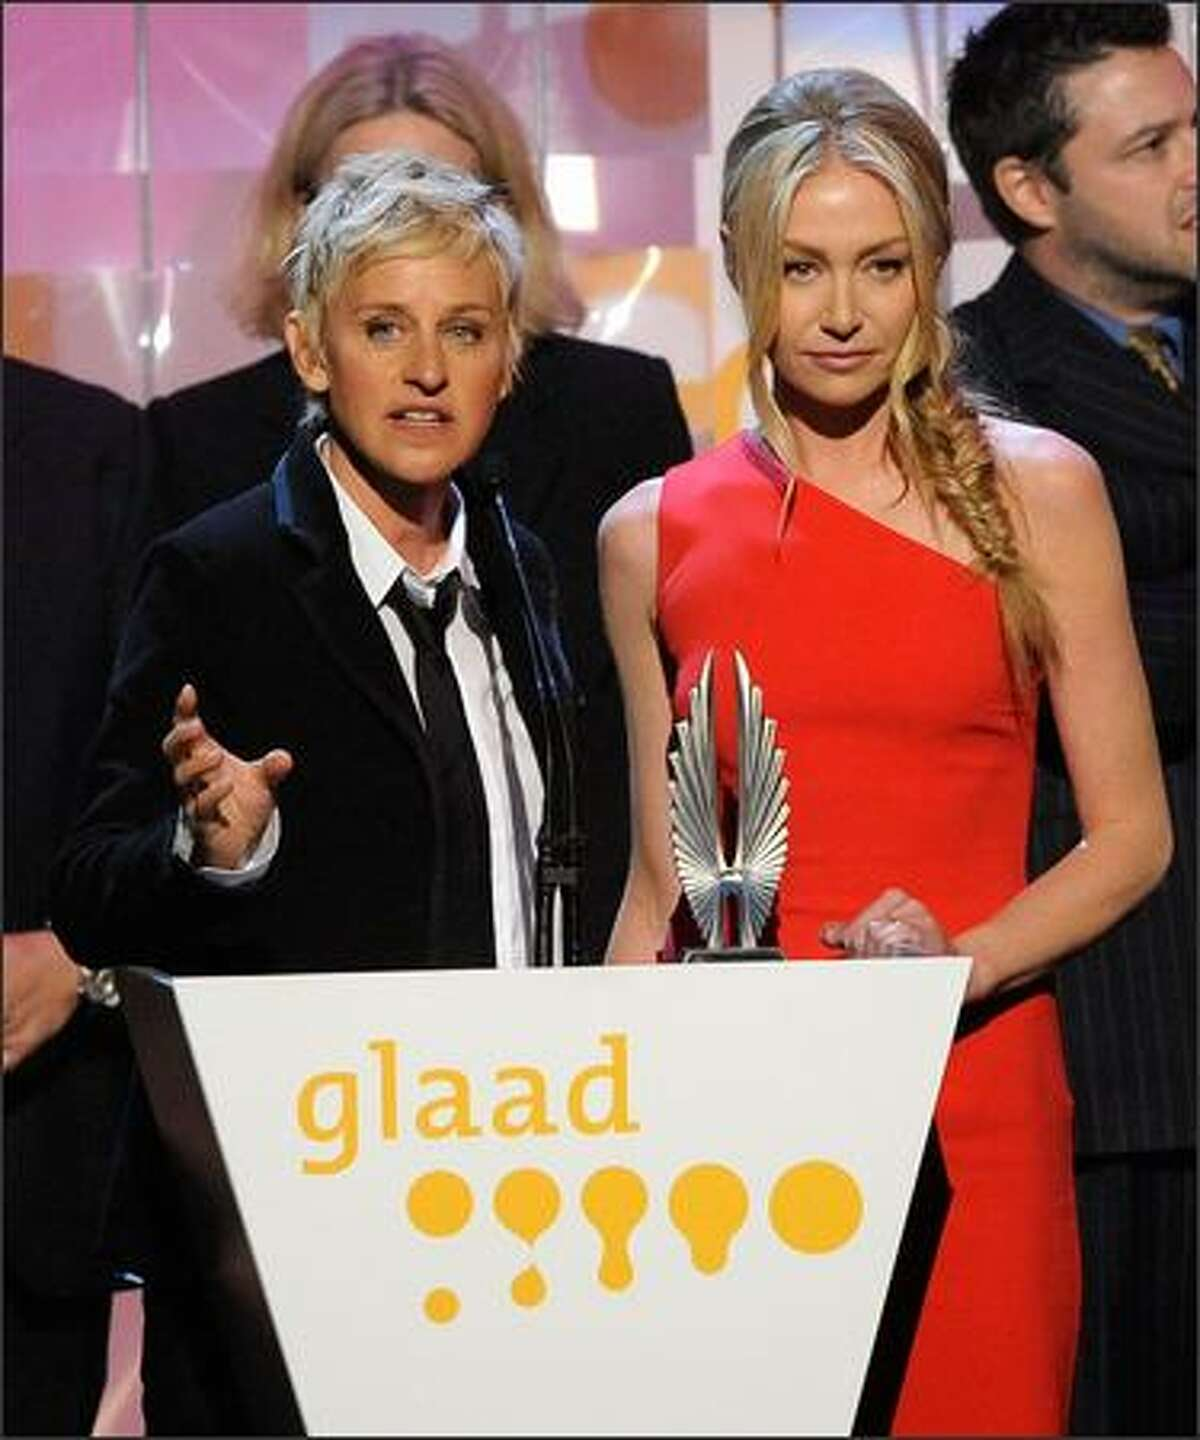 Actresses Ellen DeGeneres and Portia de Rossi speak onstage.